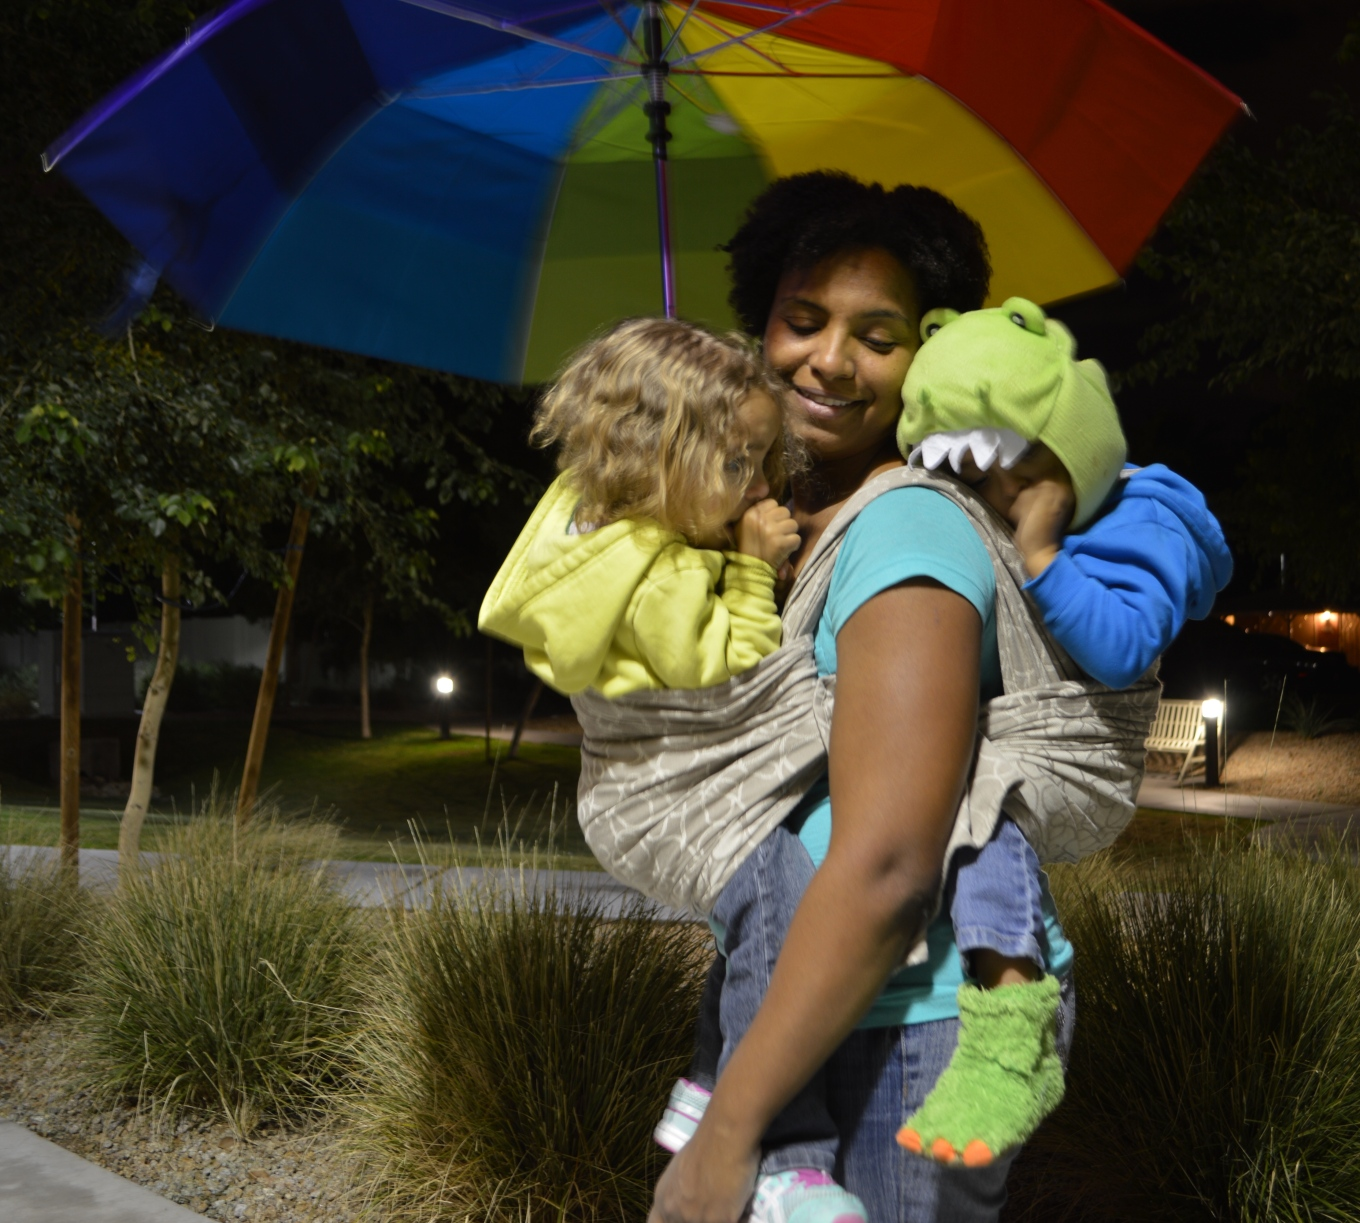 Medium brown Momma wears one toddler with dragon slippers and hat in back and light brown blond haired twin in front. Babies are in a light brown wrap with dark brown swirls. Momma is hands free to hold the large rainbow colored umbrella overhead as they walk after sunset.